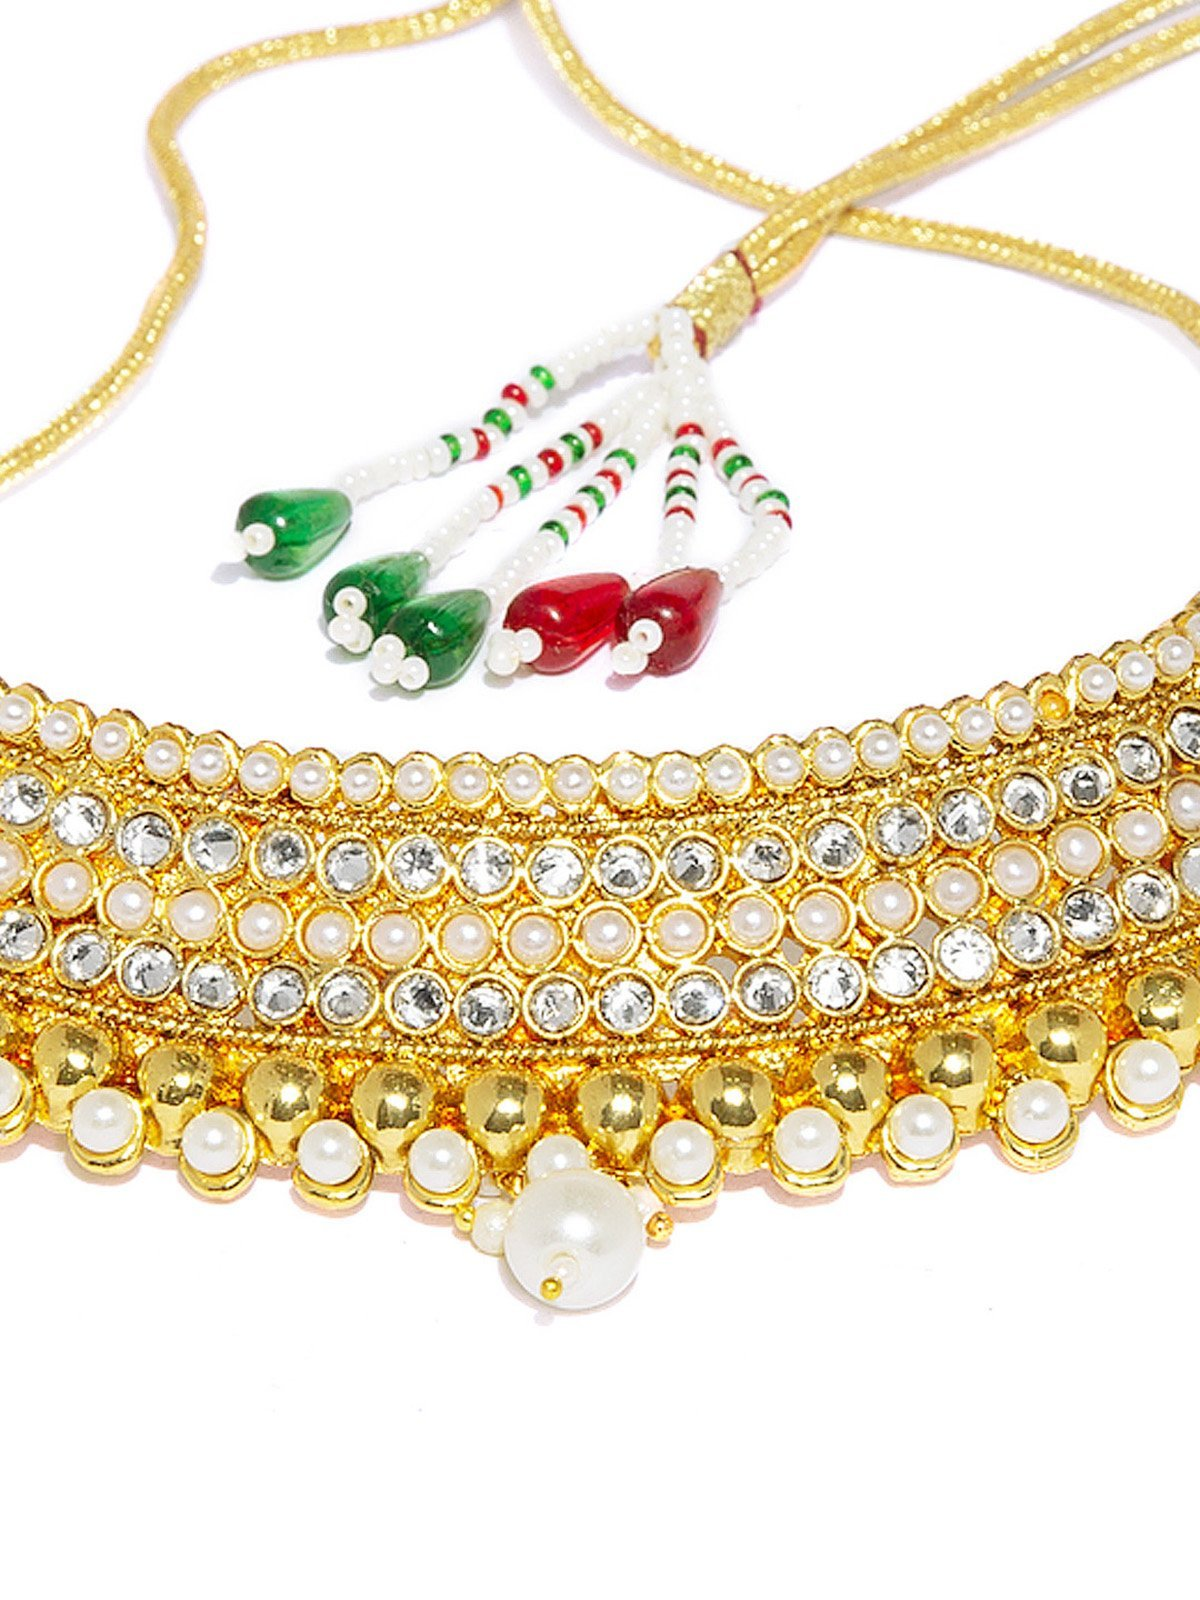 Gold Tone Kundan And Pearl Studded Choker Necklace Set